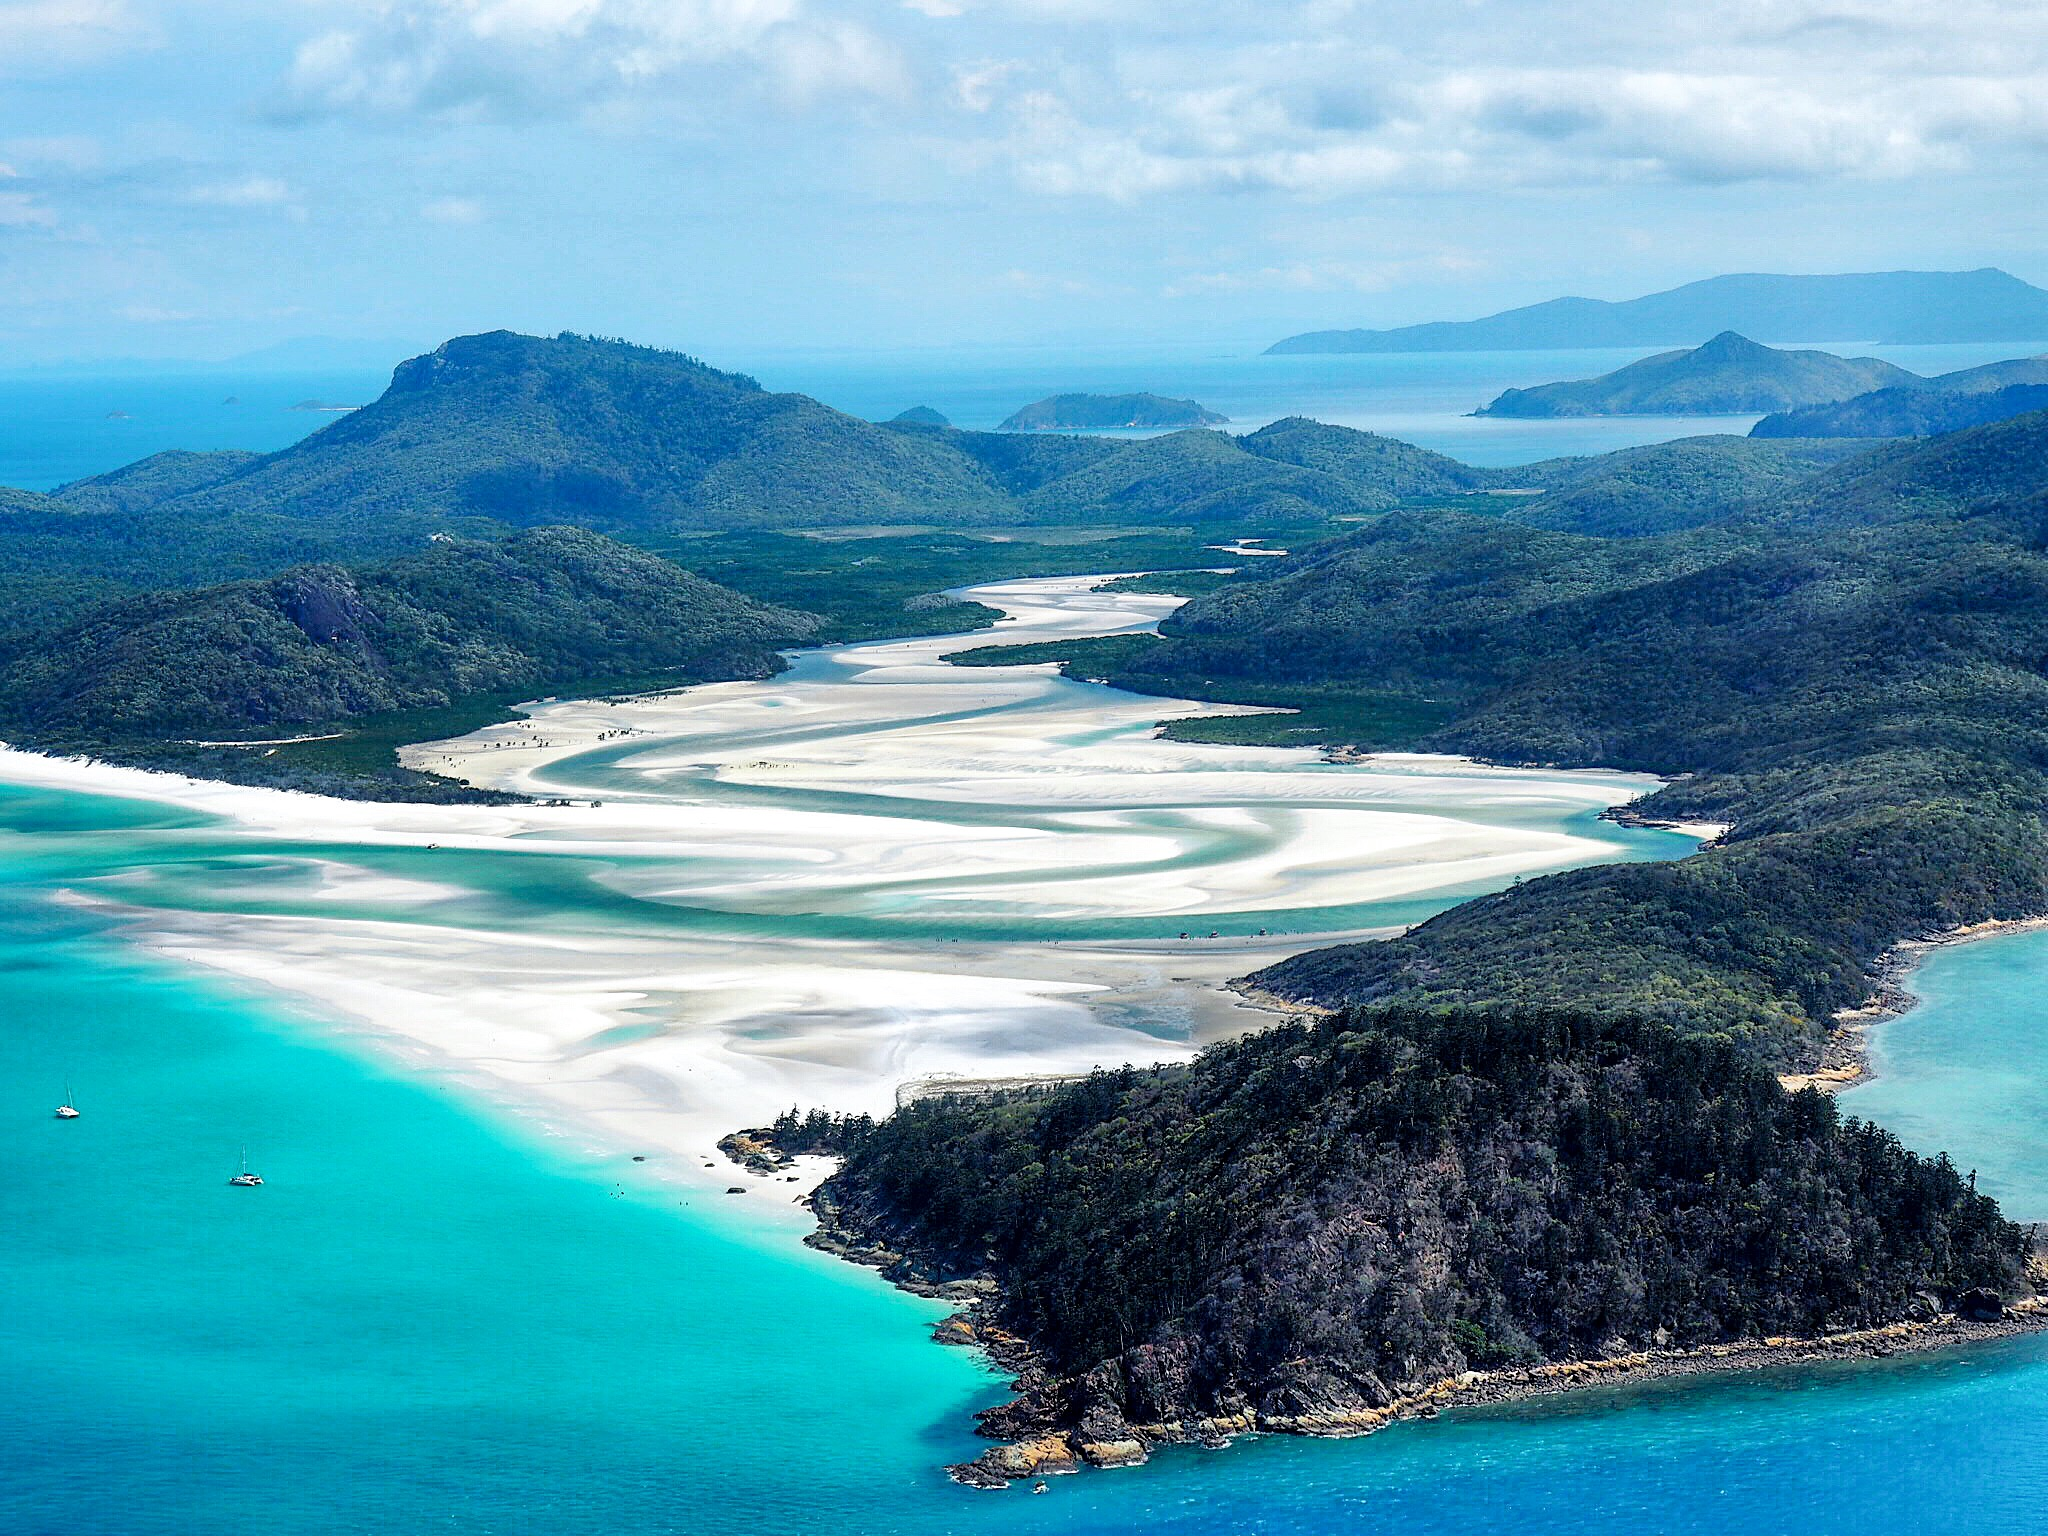 How to visit the Great Barrier Reef – 5 Queensland Holiday Ideas